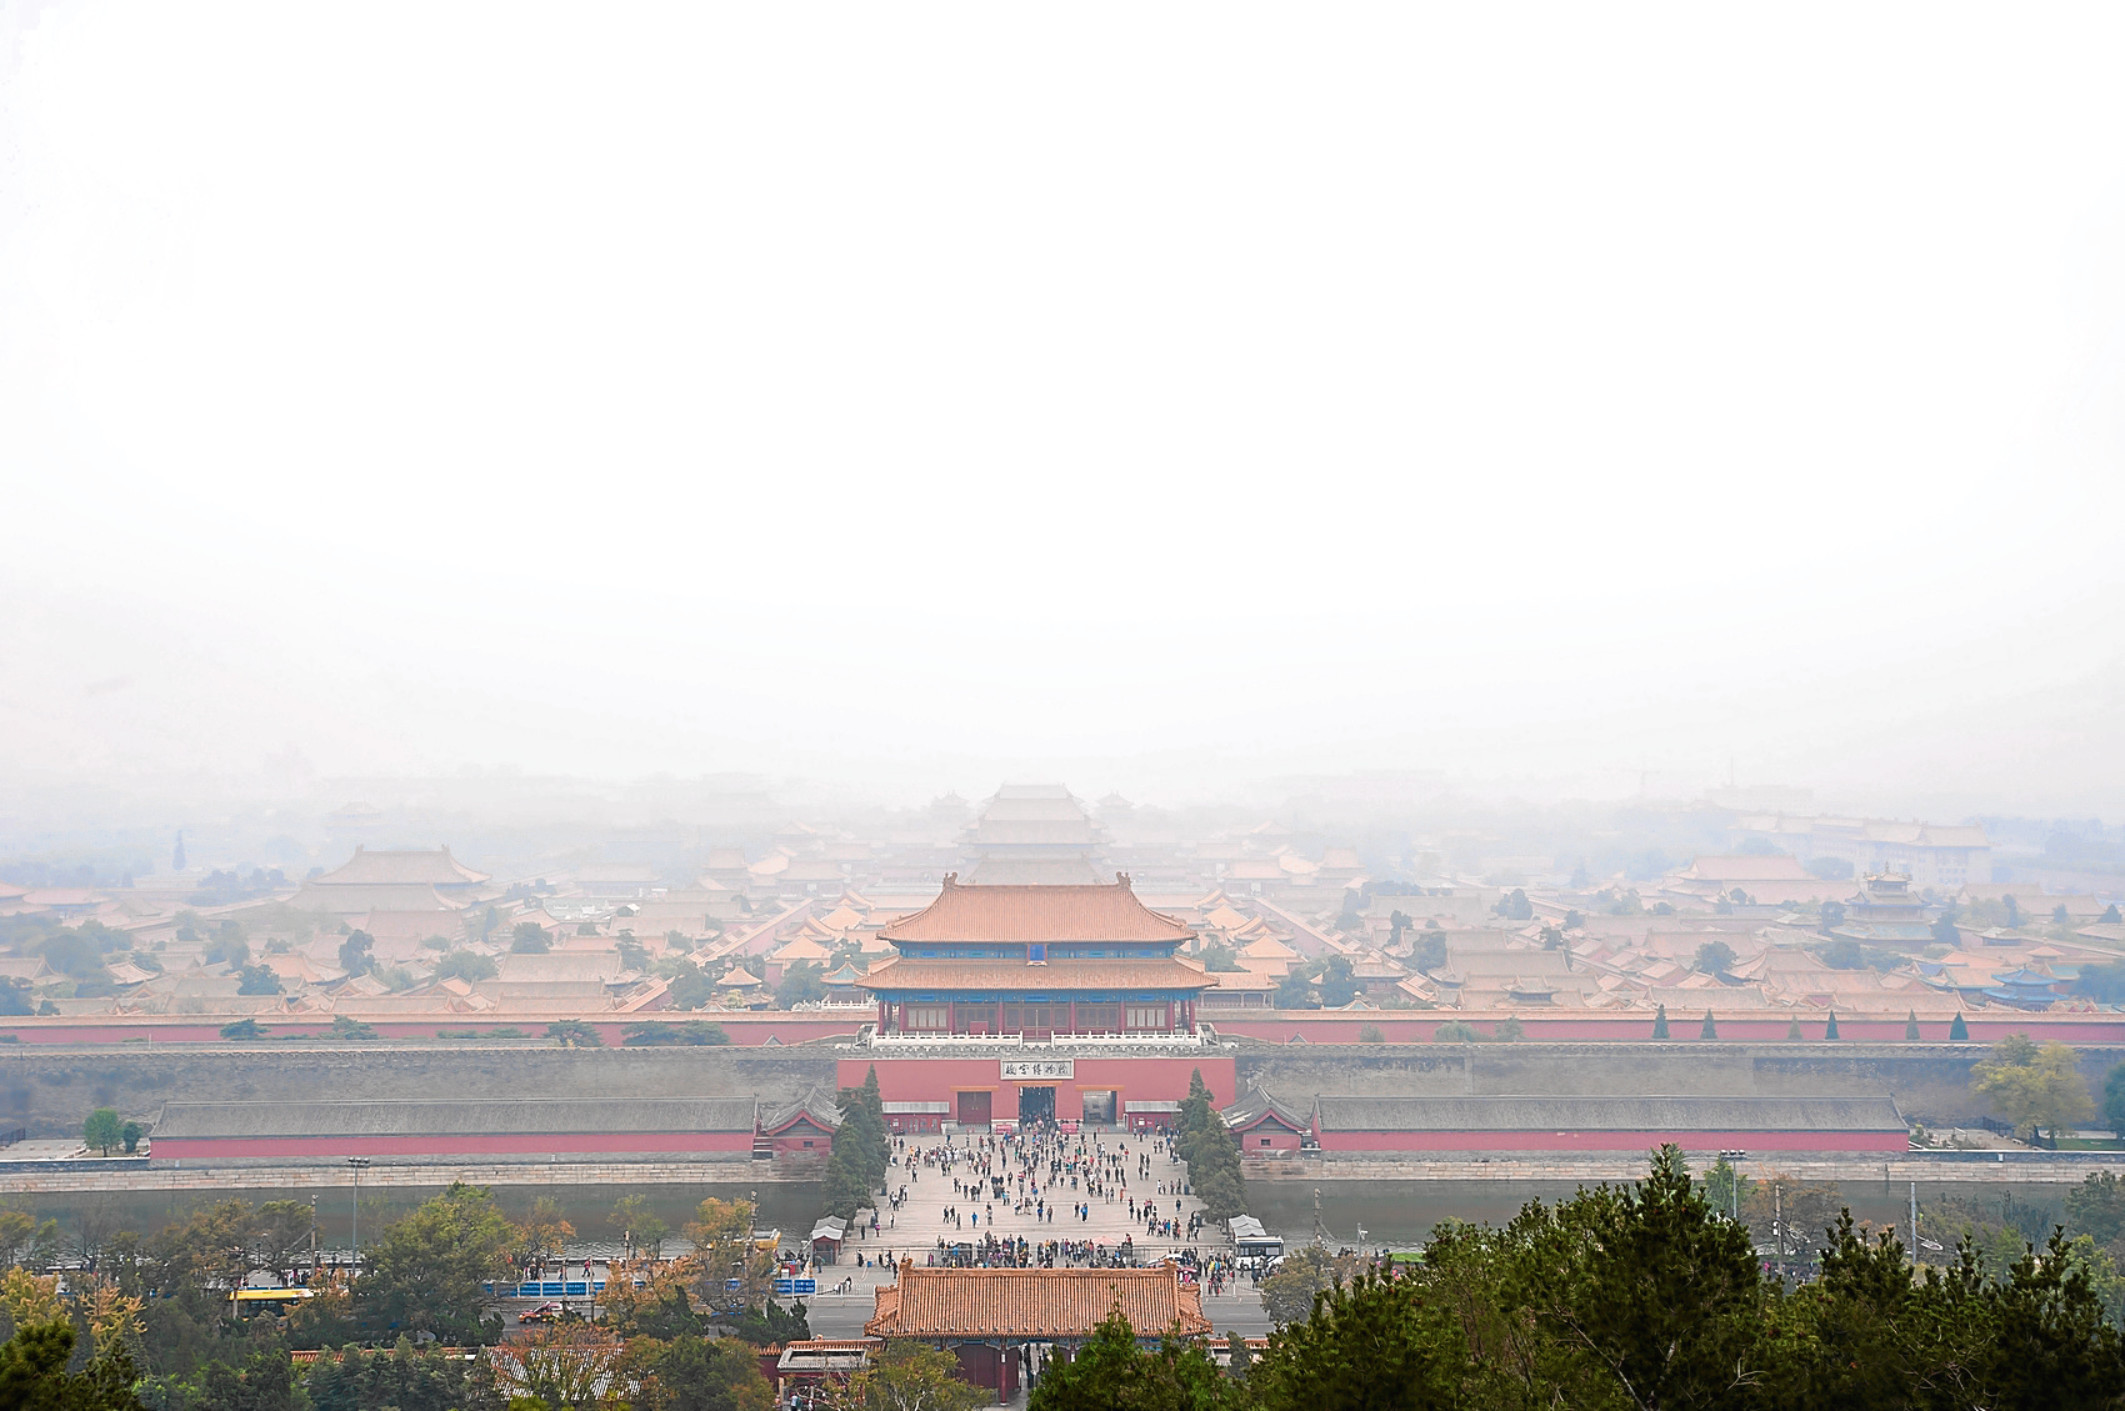 Air pollution has become a major problem in China